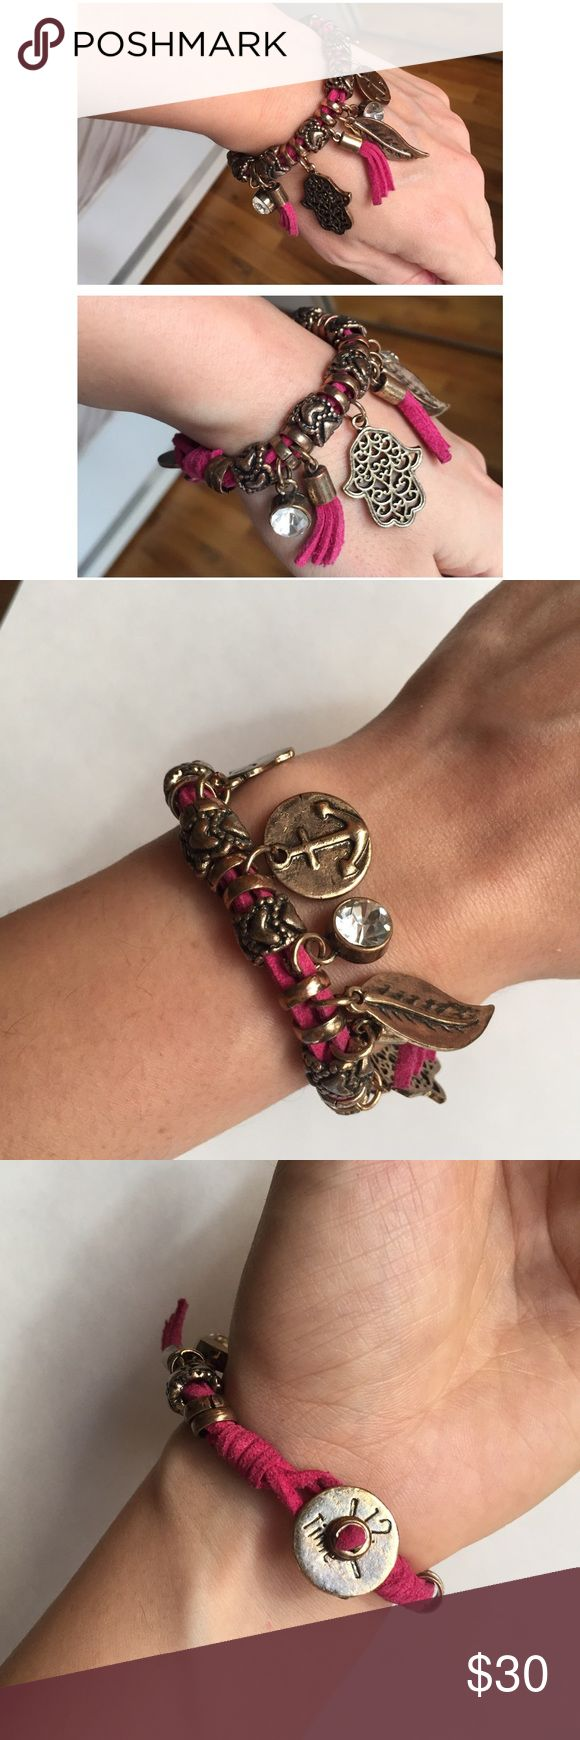 "30% OFF BUNDLES Leather Rose Gold Charm Bracelet Perfect charm bracelet! It's super fun and loaded with gold colored good luck charms and two large crystals. Total Length:7"" All measurements are taken with the item laid flat.  Excellent Used Condition Color: Pink Leather with rose gold charms 30% off on bundles. I ship same-day from pet/smoke-free home. Buy with confidence. I am a top seller with over 500 5-star ratings and A LOT of love notes. Check them out! 😊😎 Jewelry Bracelets"